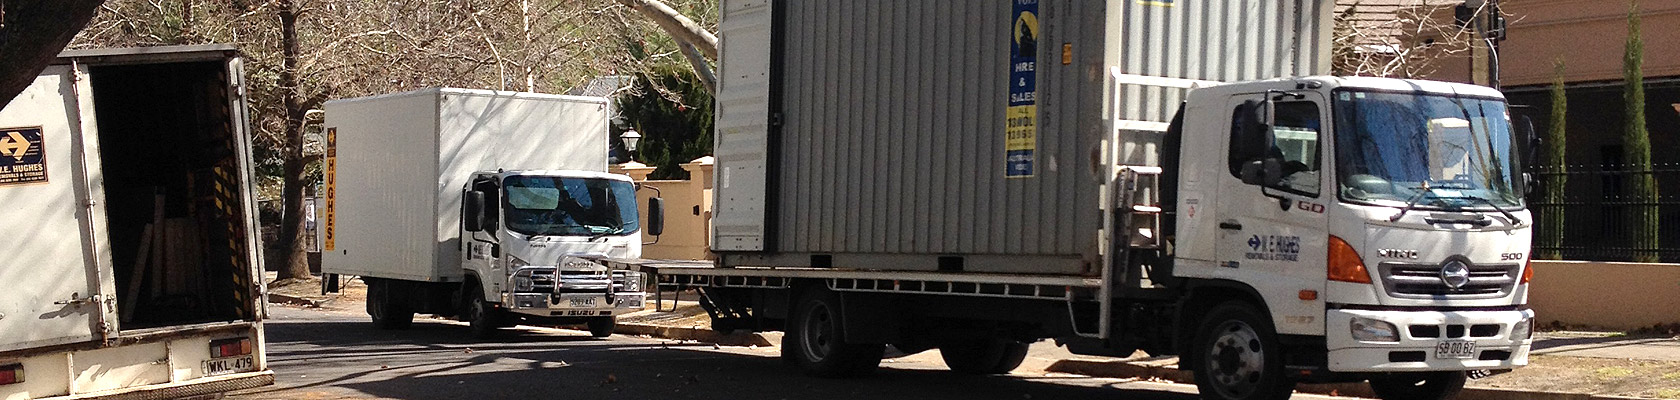 WE Hughes Adelaide Furniture Removals And Storage Adelaide New Furniture Removals Exterior